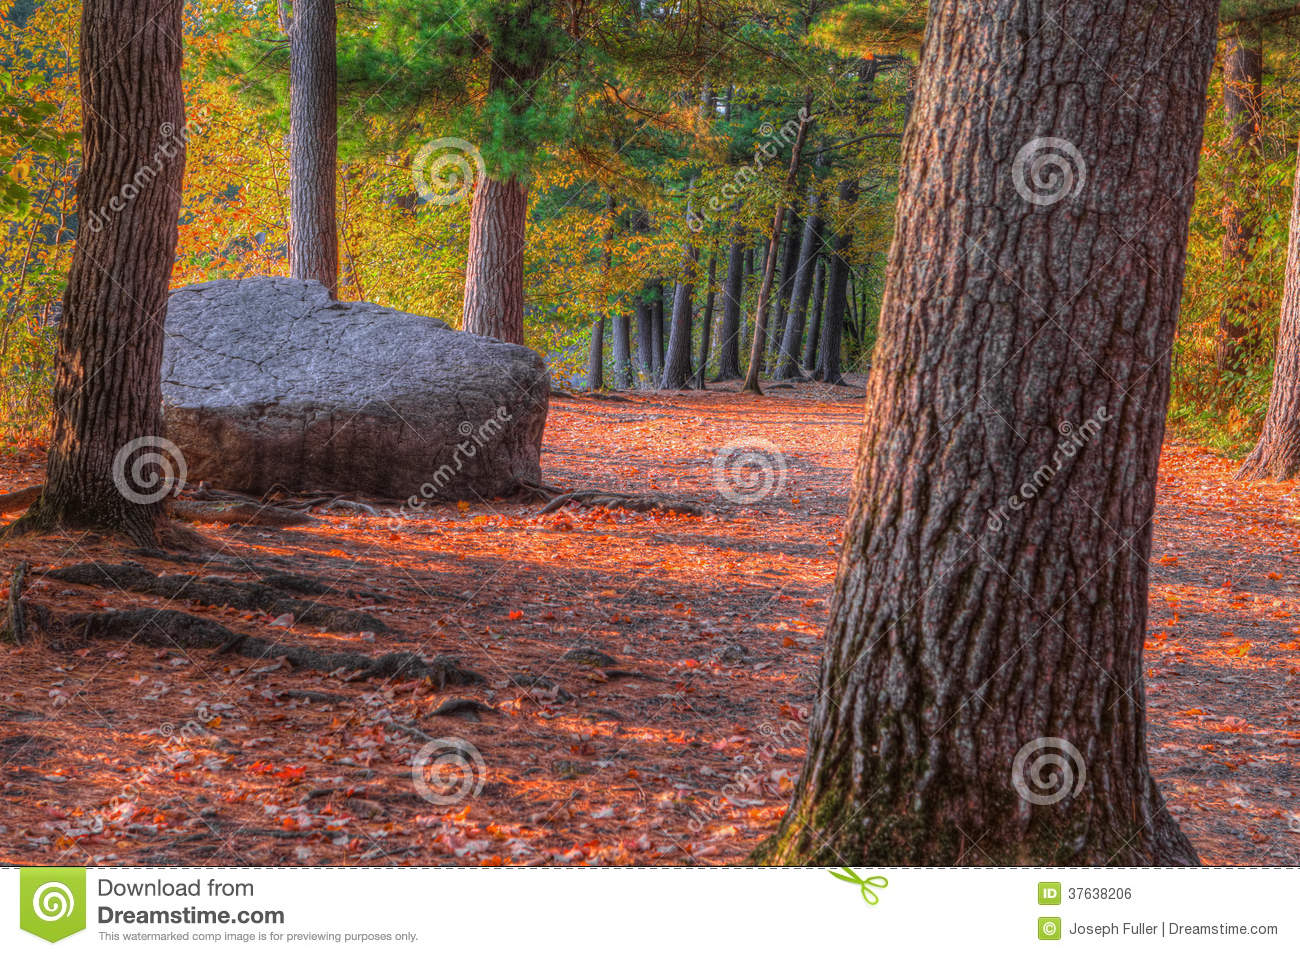 An HDR landscape of a forest and large rock